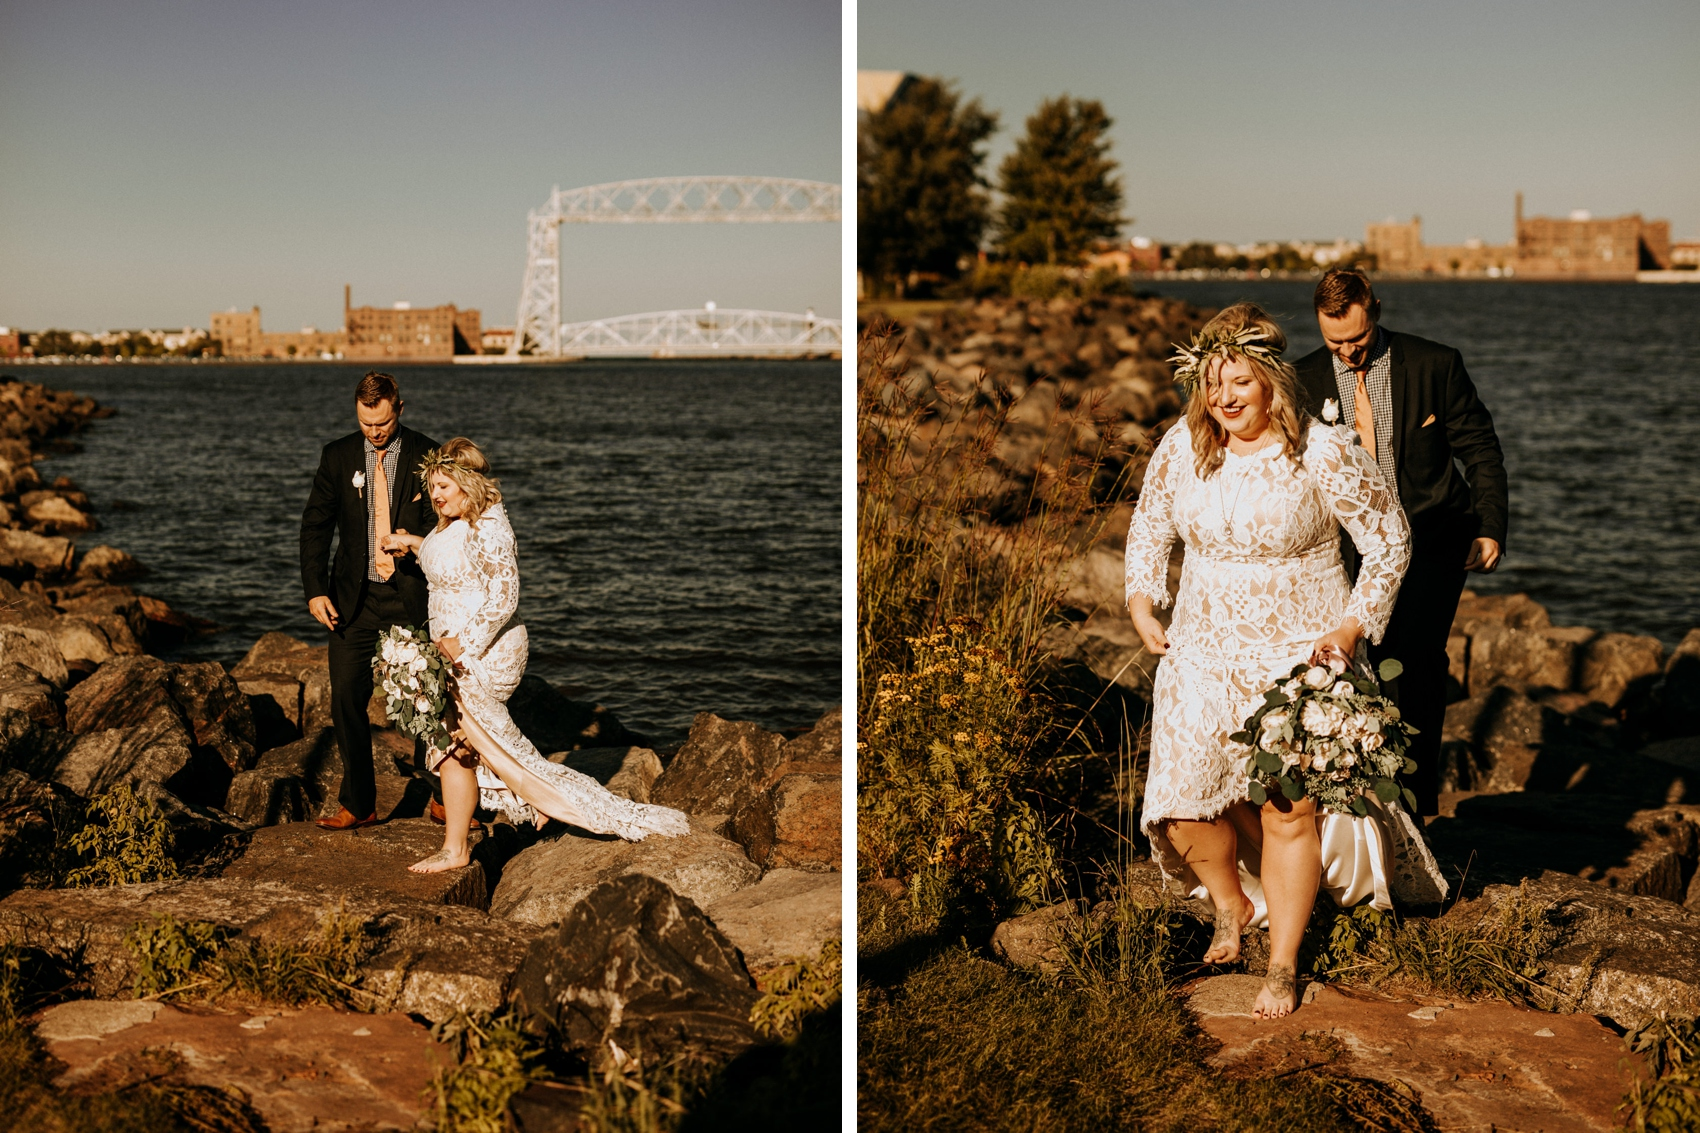 adventure-elopement-duluth-mn-narrowleaf-love-and-adventure-photography-027-028.jpg